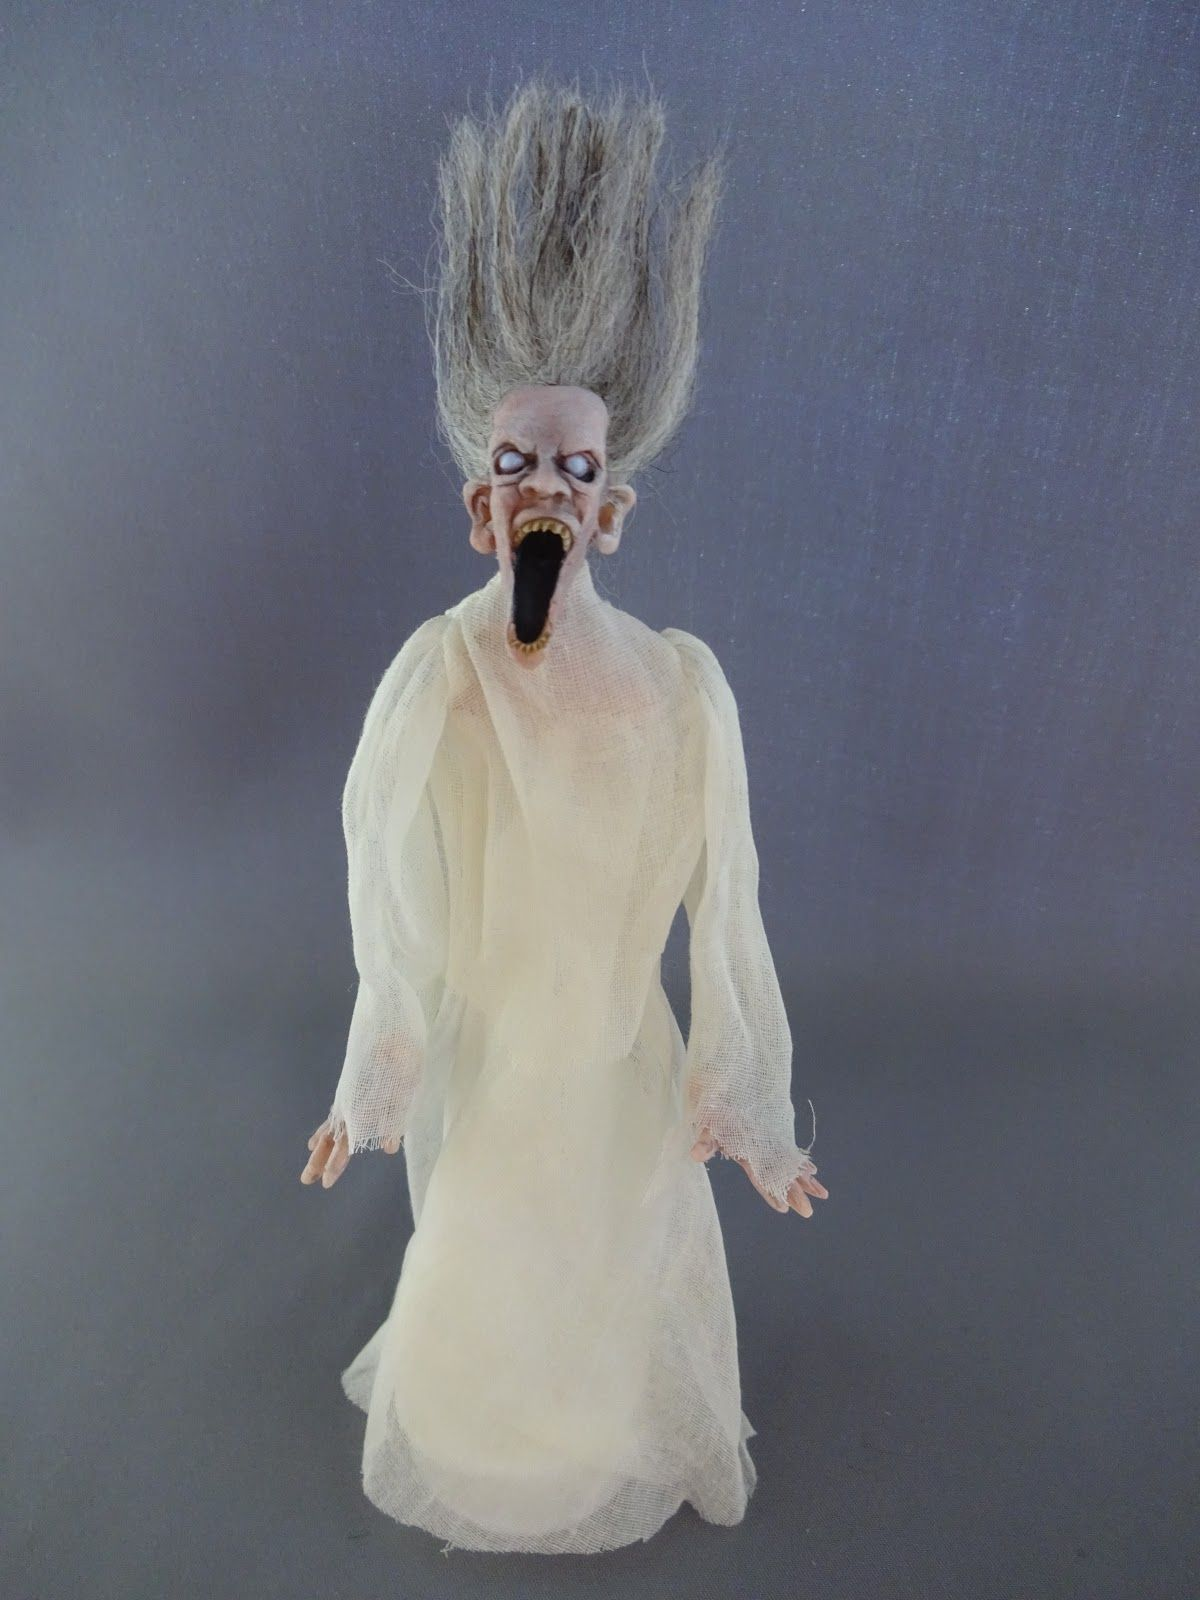 From the Studio of Pat Benedict: Miniature Screaming Banshee Ghost for Haunted Dollhouse now on eBay Pat Benedict woopitydooart #haunteddollhouse From the Studio of Pat Benedict: Miniature Screaming Banshee Ghost for Haunted Dollhouse now on eBay Pat Benedict woopitydooart #haunteddollhouse From the Studio of Pat Benedict: Miniature Screaming Banshee Ghost for Haunted Dollhouse now on eBay Pat Benedict woopitydooart #haunteddollhouse From the Studio of Pat Benedict: Miniature Screaming Banshee G #haunteddollhouse